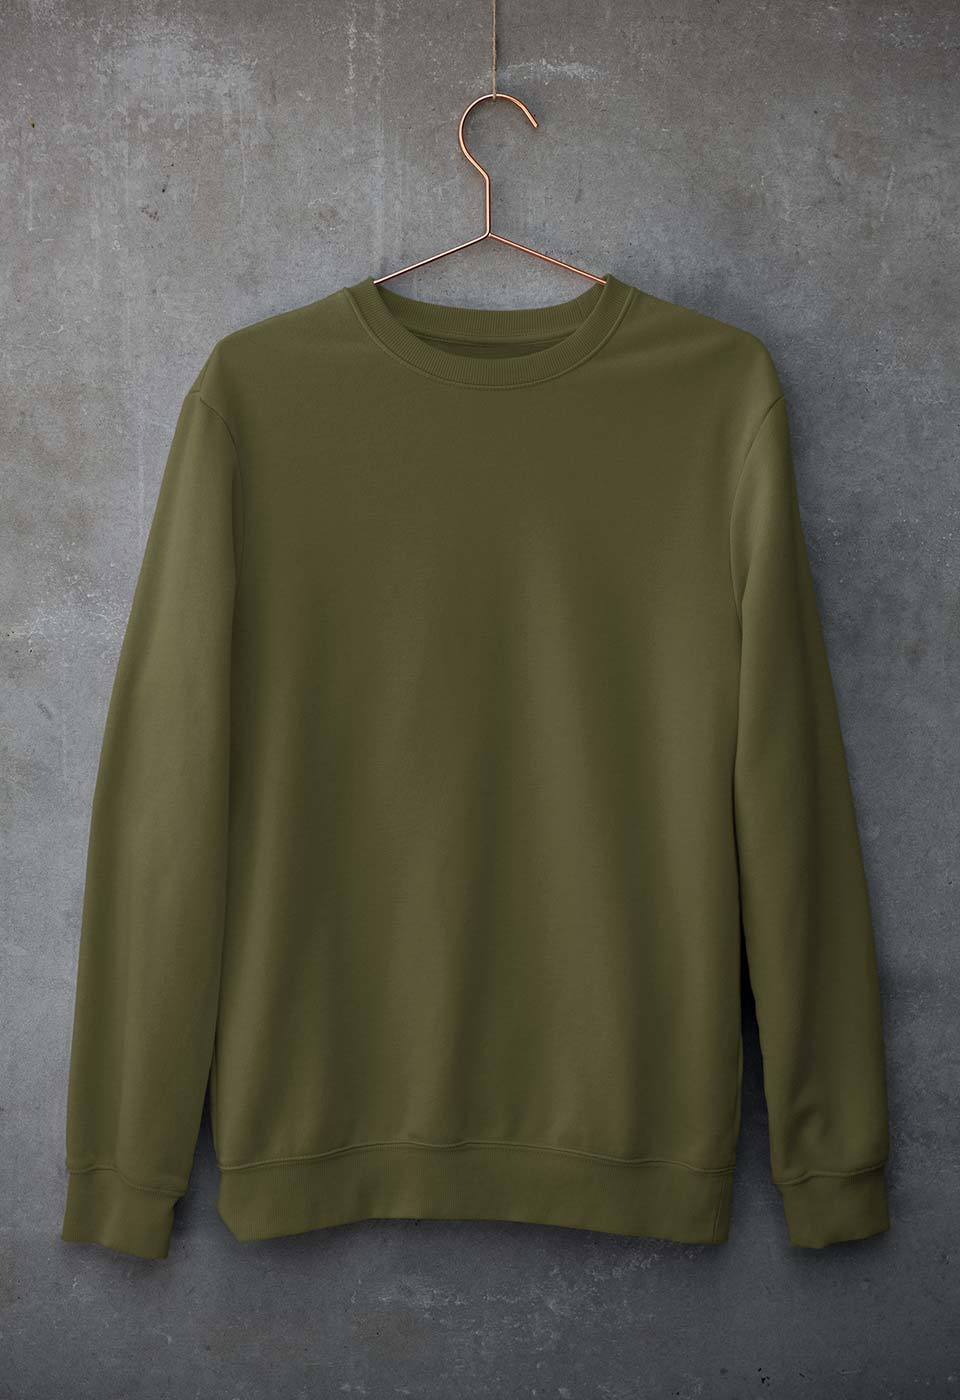 Plain Olive Green Unisex Sweatshirt for Men/Women